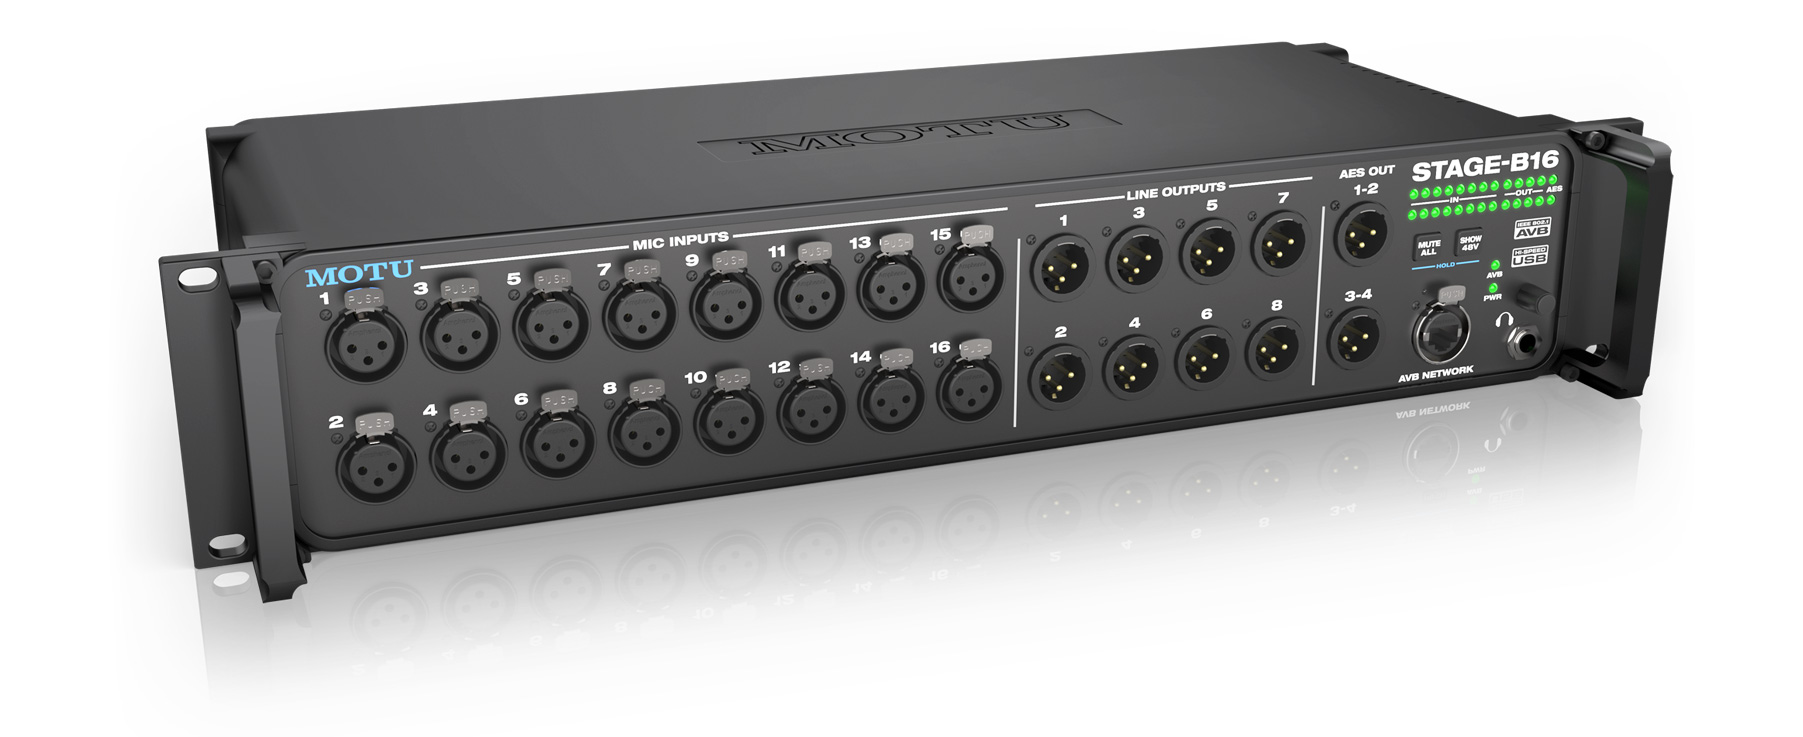 Motu Stage B16 16 Channel Stagebox And Audio Interface